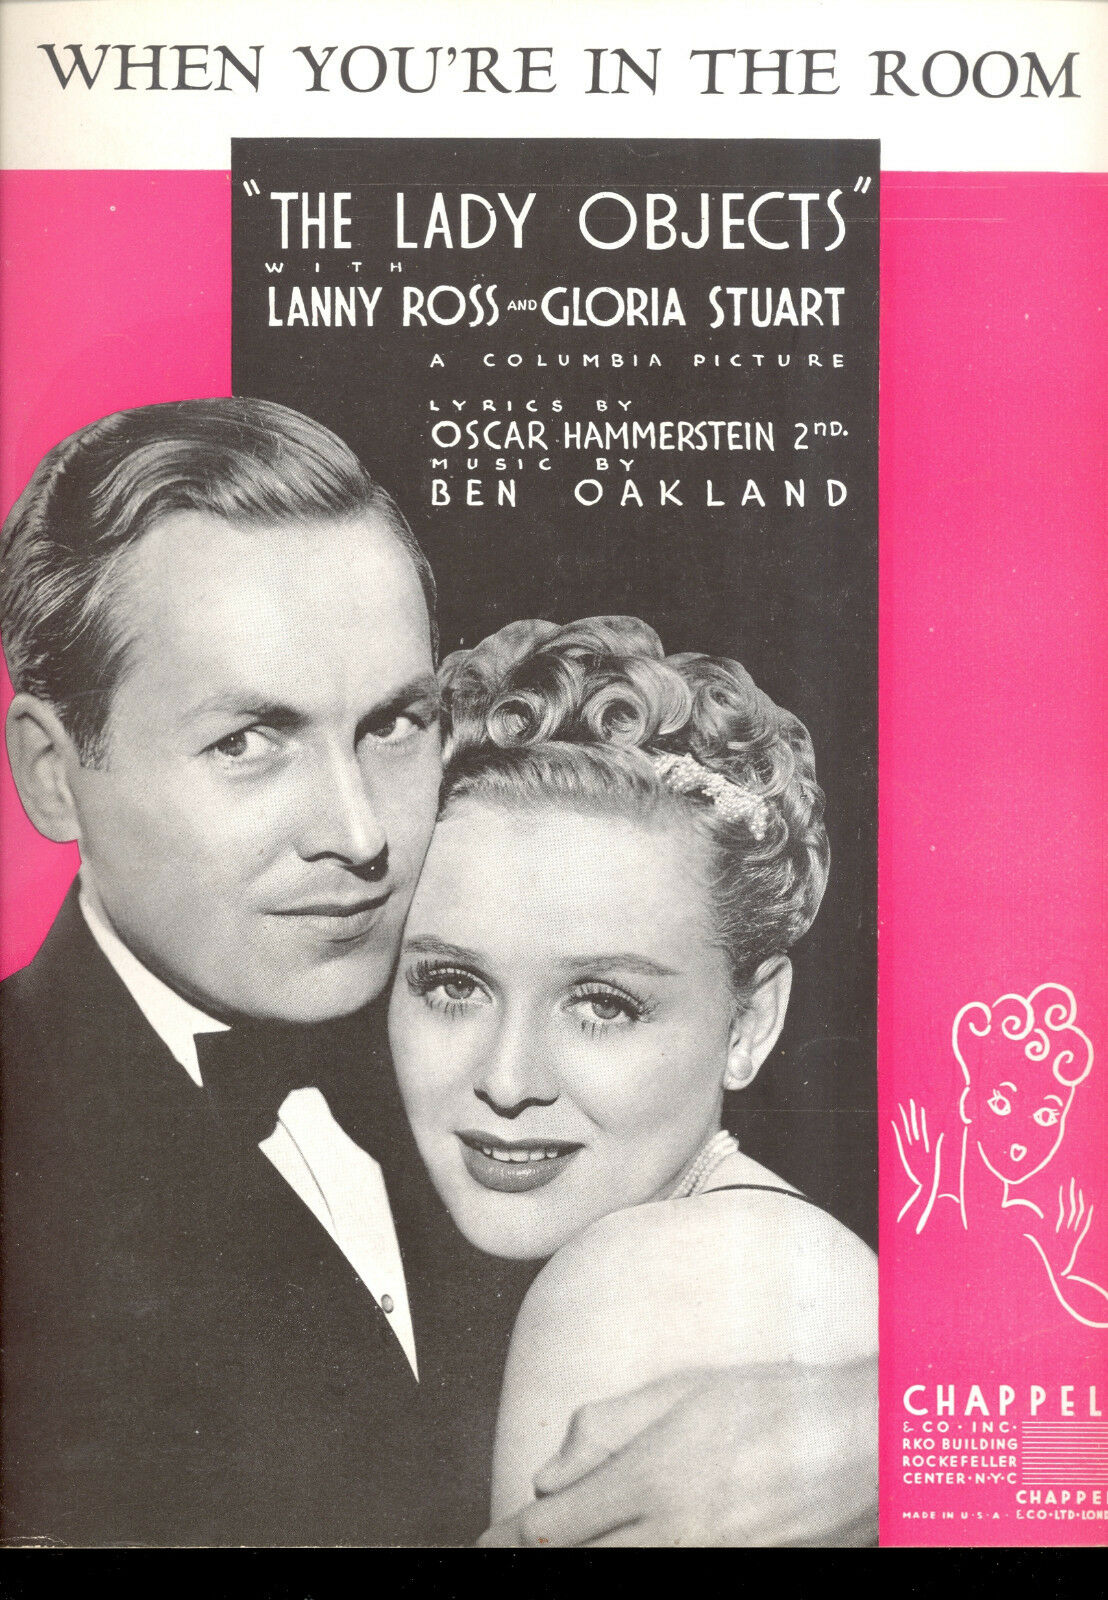 THE LADY OBJECTS Sheet Music  When You're In The Room  Gloria Stuart Lanny Ross